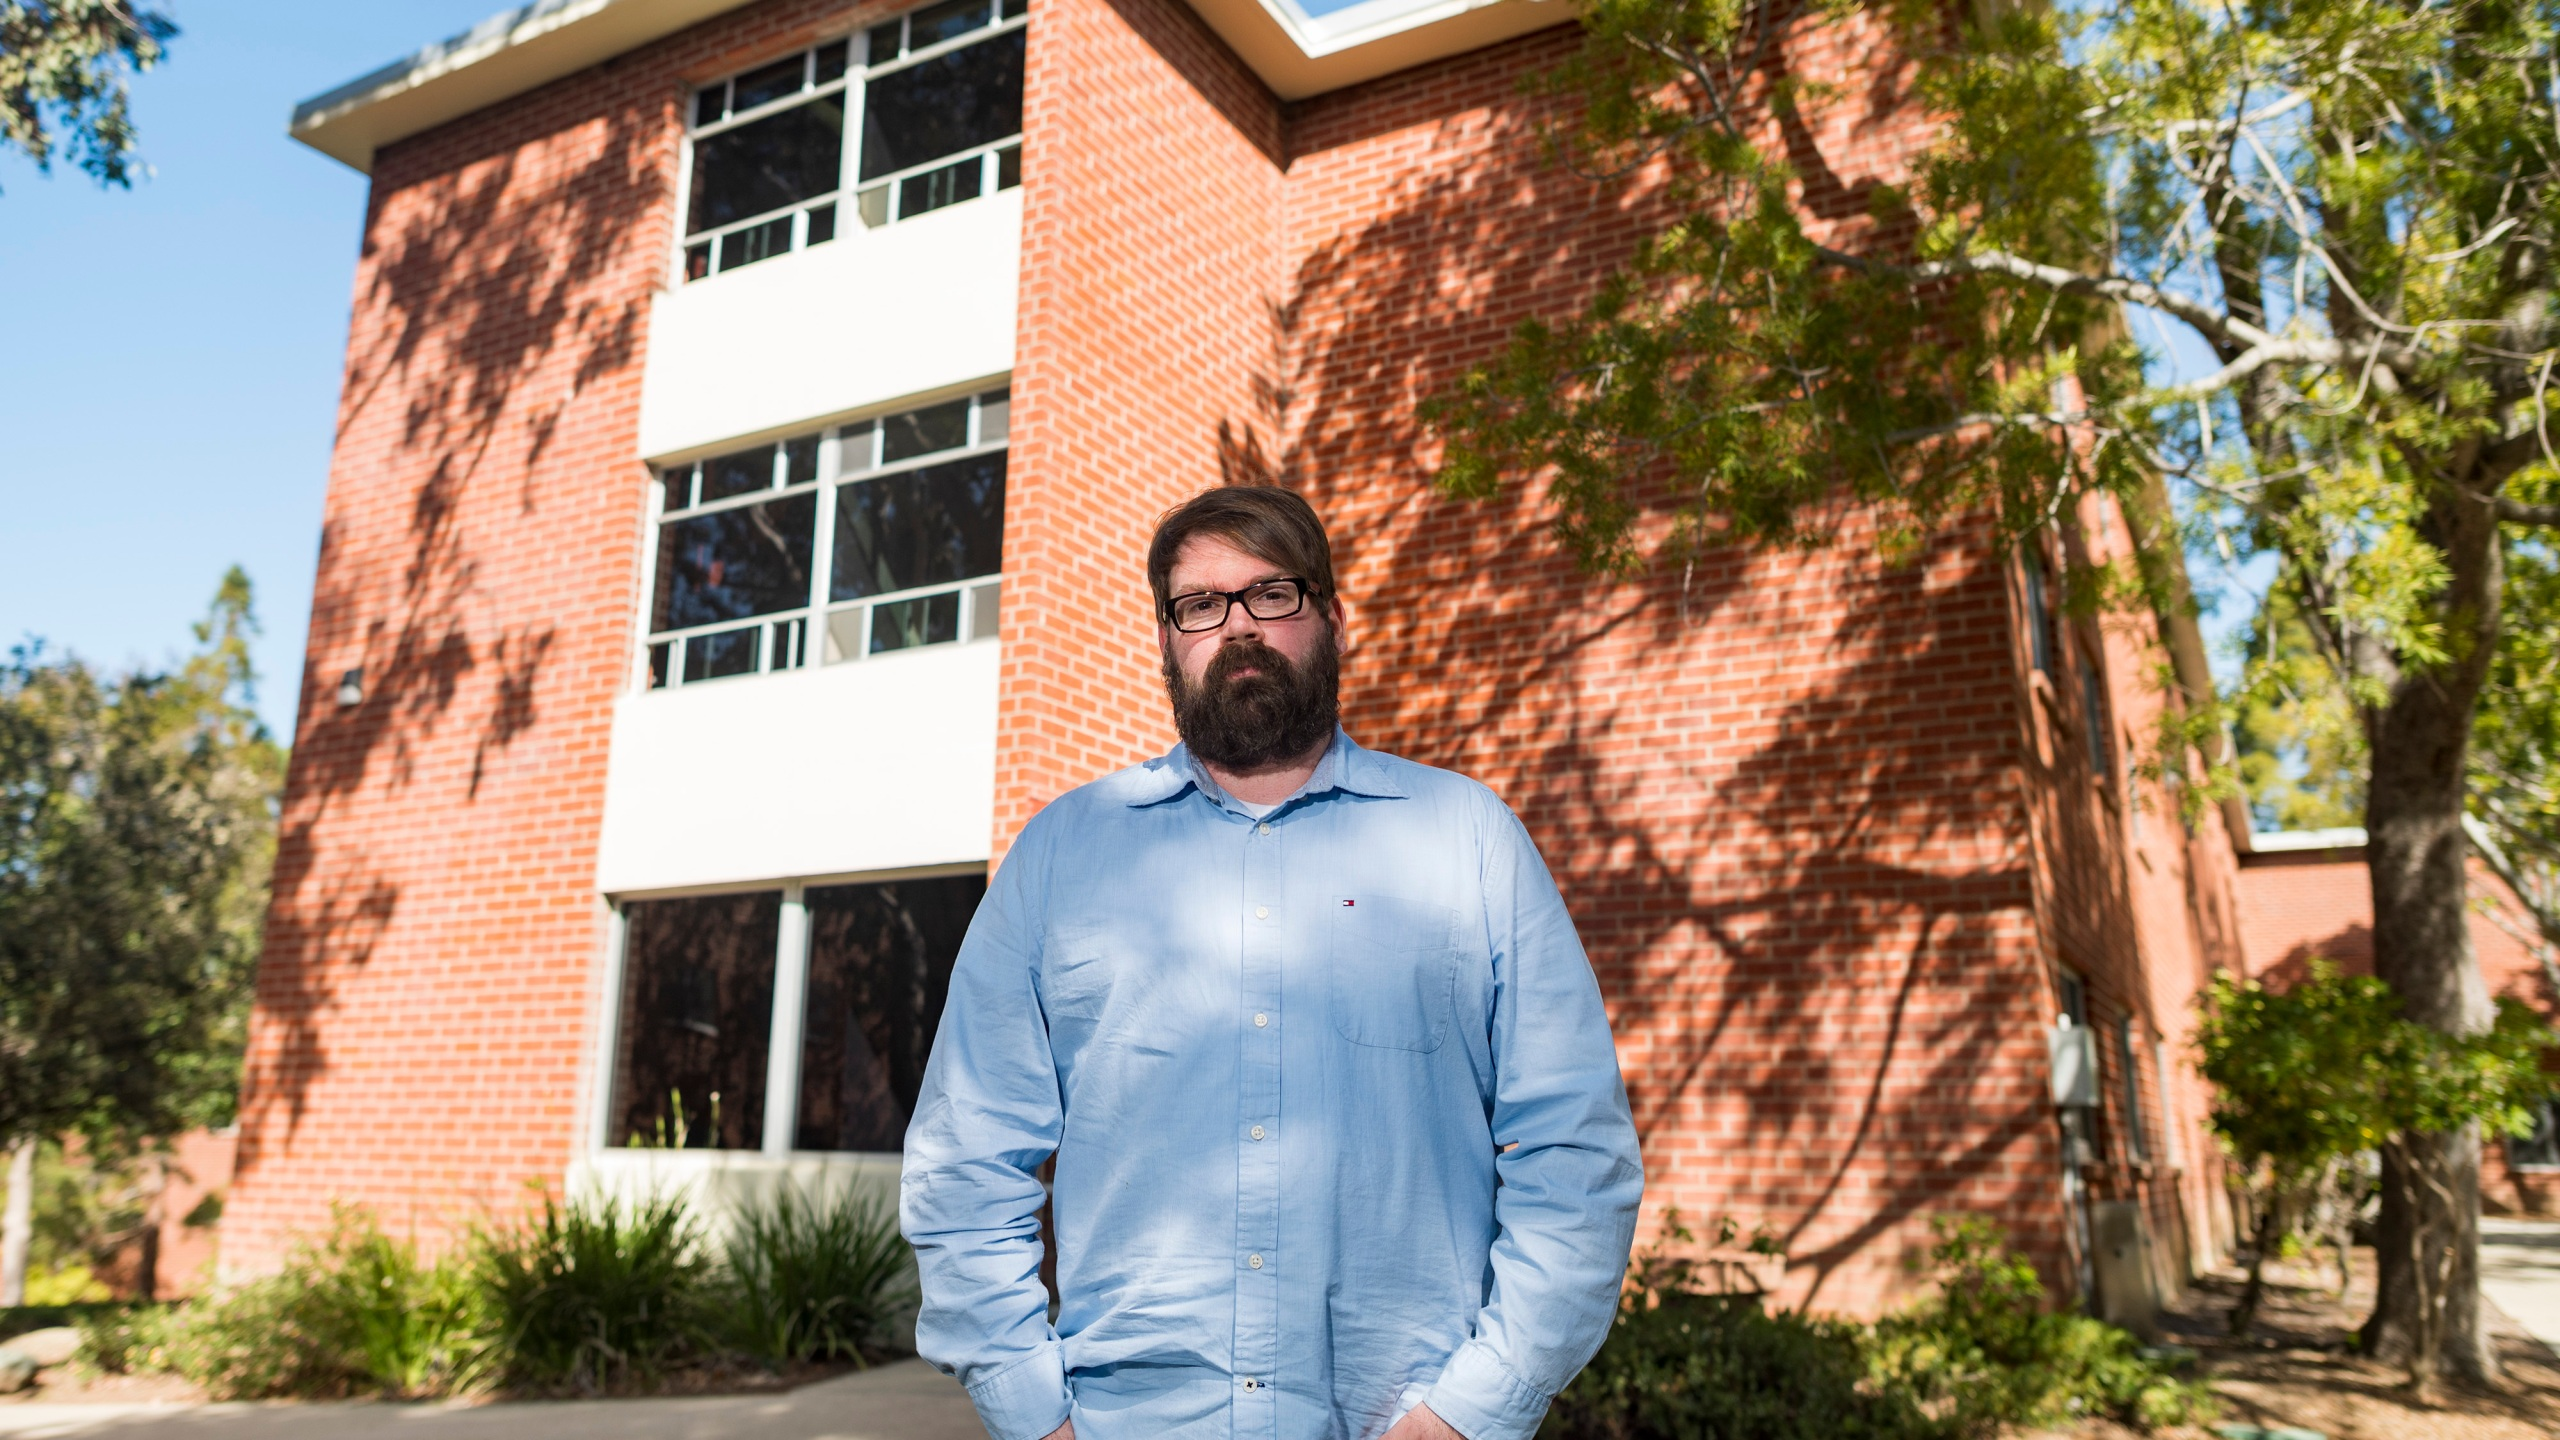 Chris Lambert, a musician and recording engineer, poses on April 15, 2021, in front of Muir Hall dormitory at California Polytechnic University in San Luis Obispo. (Nic Coury / Associated Press)